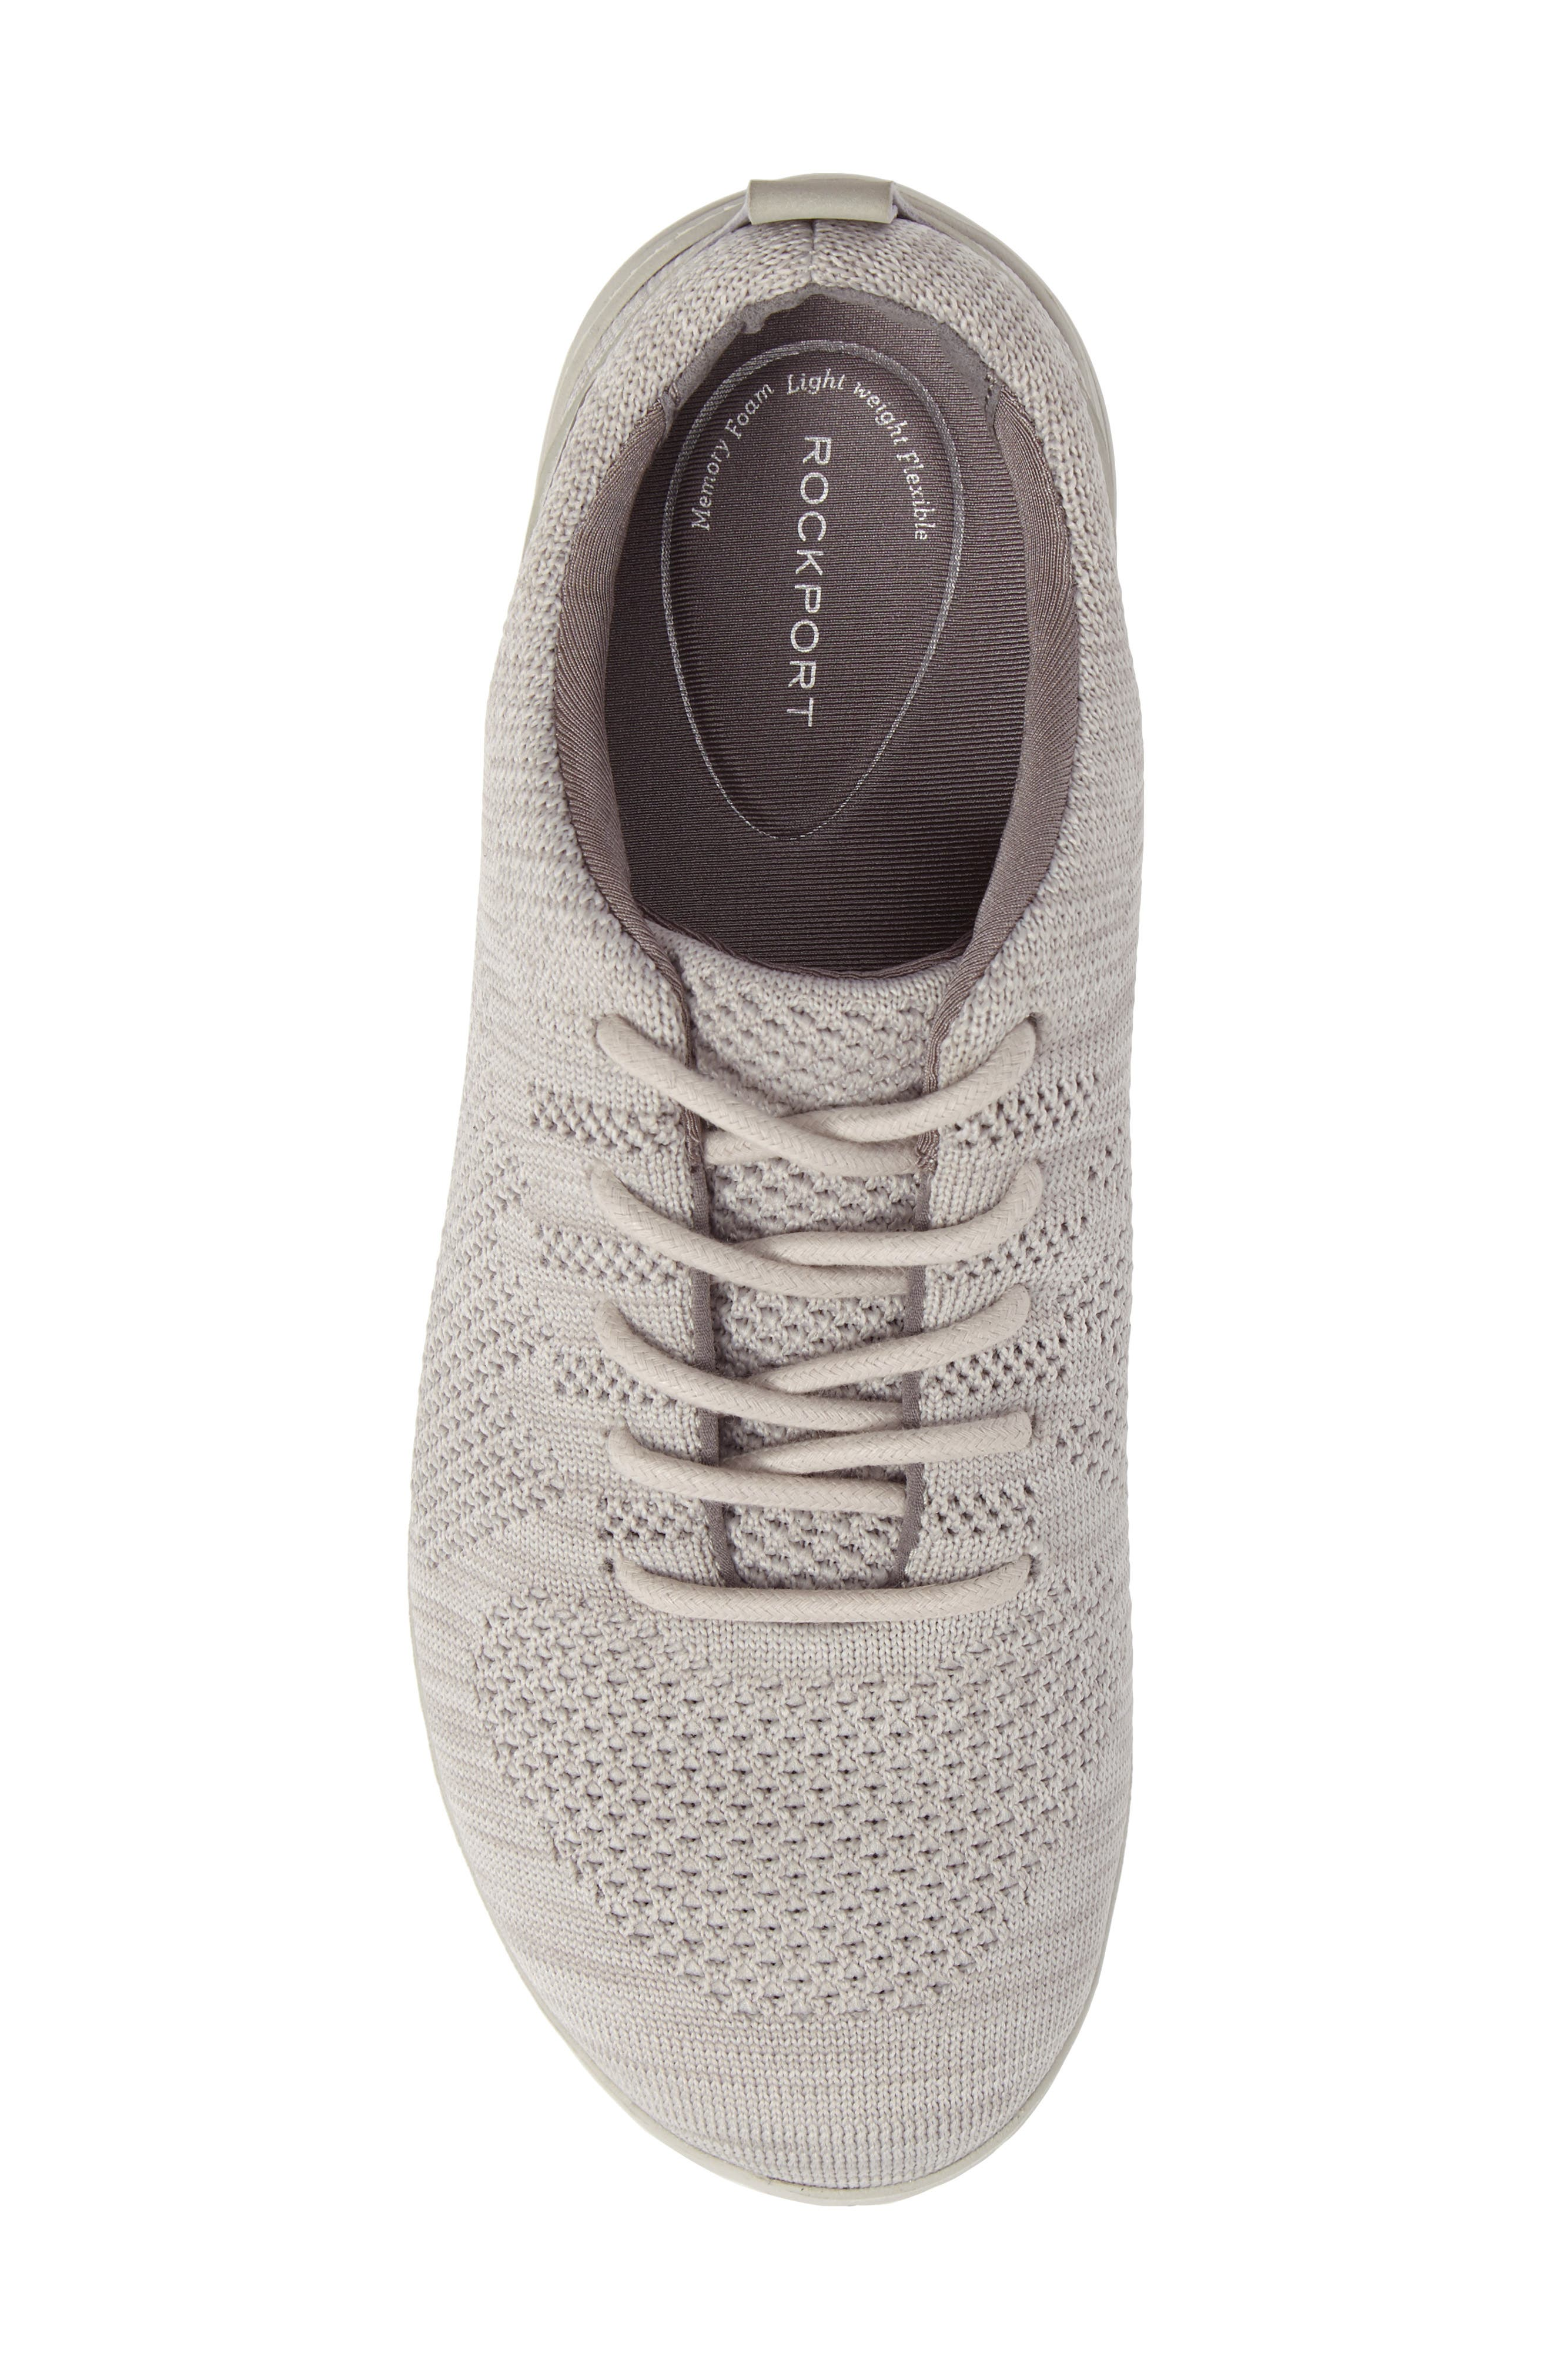 Raelyn Knit Sneaker,                             Alternate thumbnail 5, color,                             020